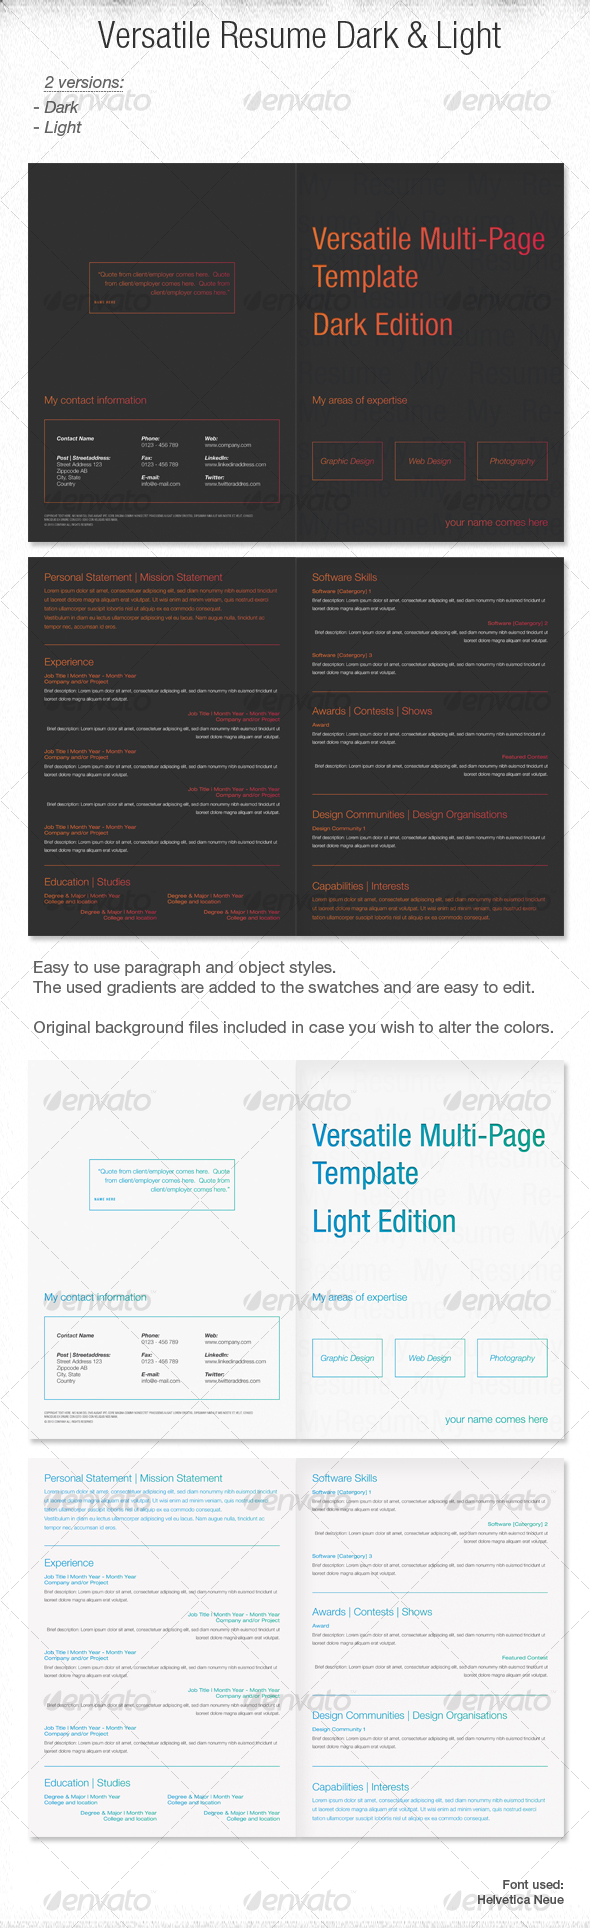 GraphicRiver Versatile Multi-Page Template Dark and Light 104103